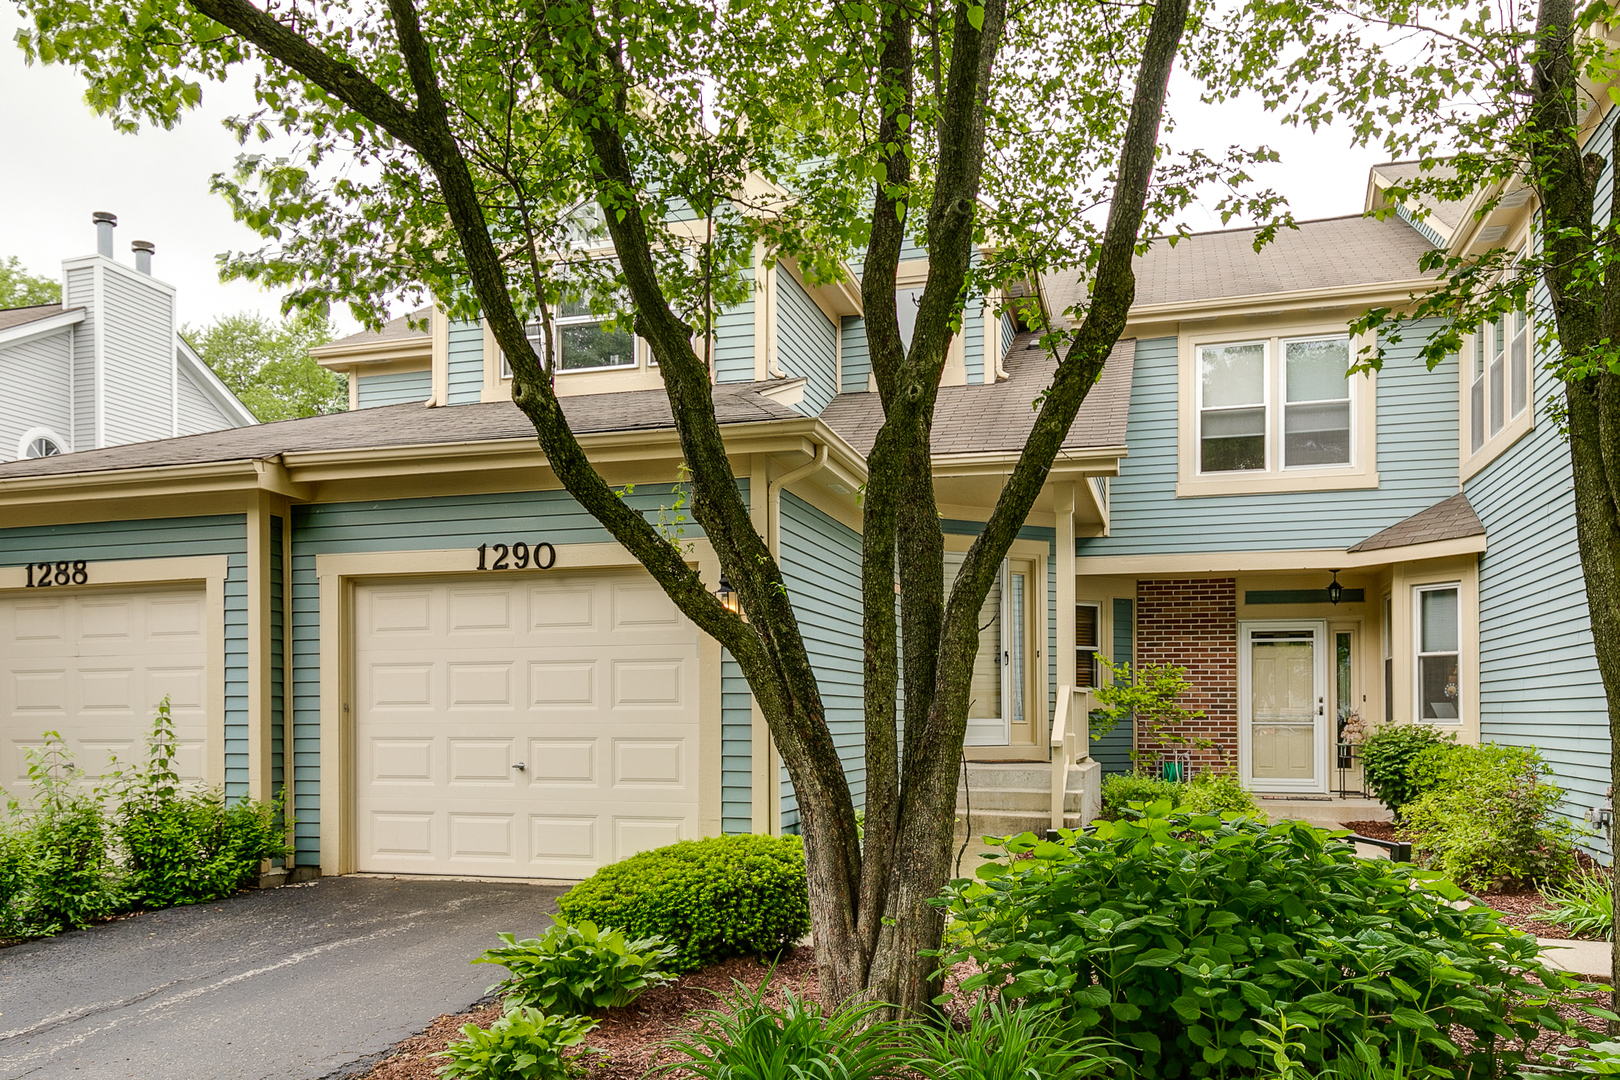 1290 Tennyson Lane, Unit 202, Naperville, Il 60540